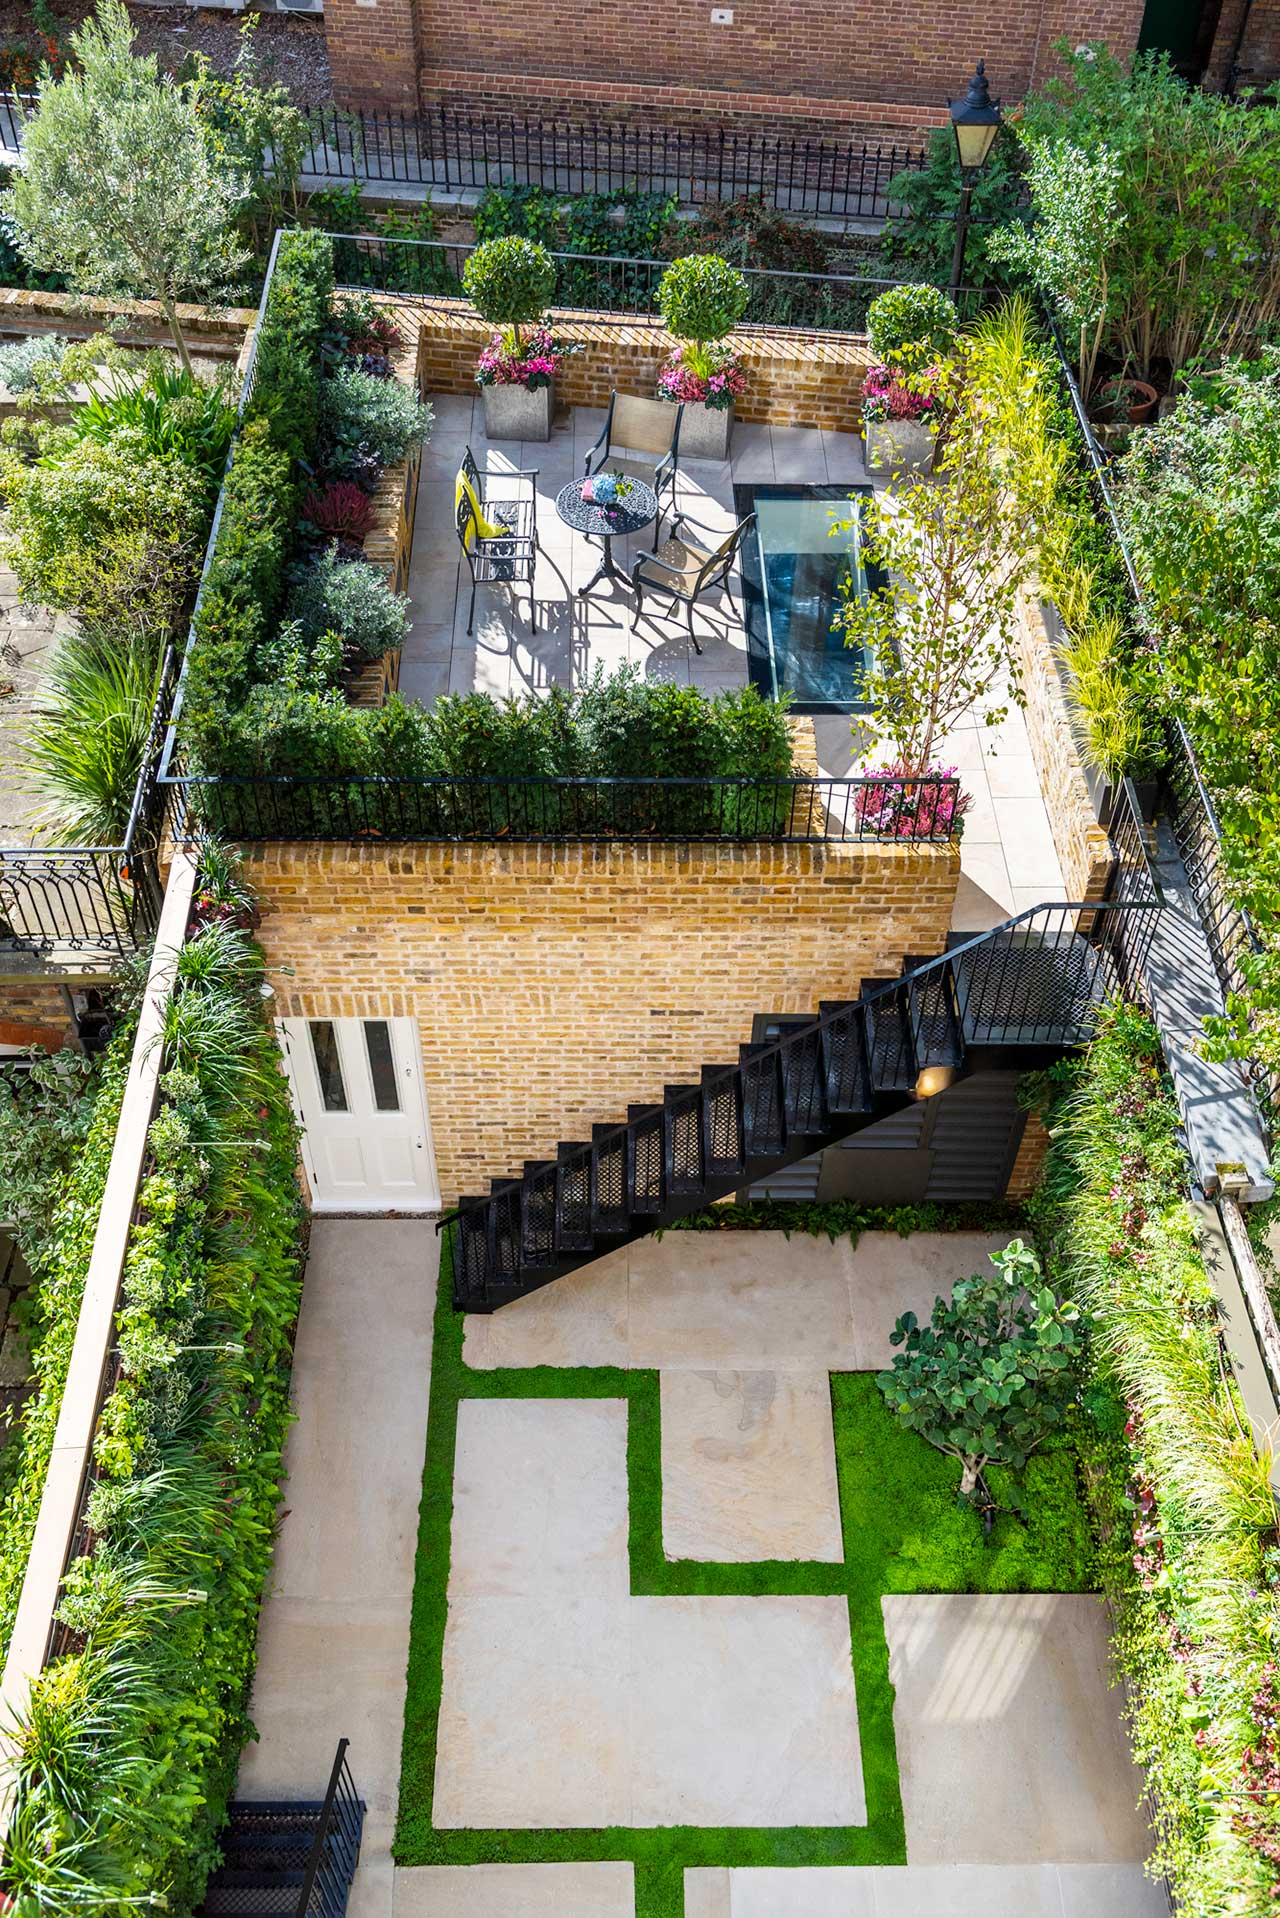 Knightsbridge minimalist garden viewed from above